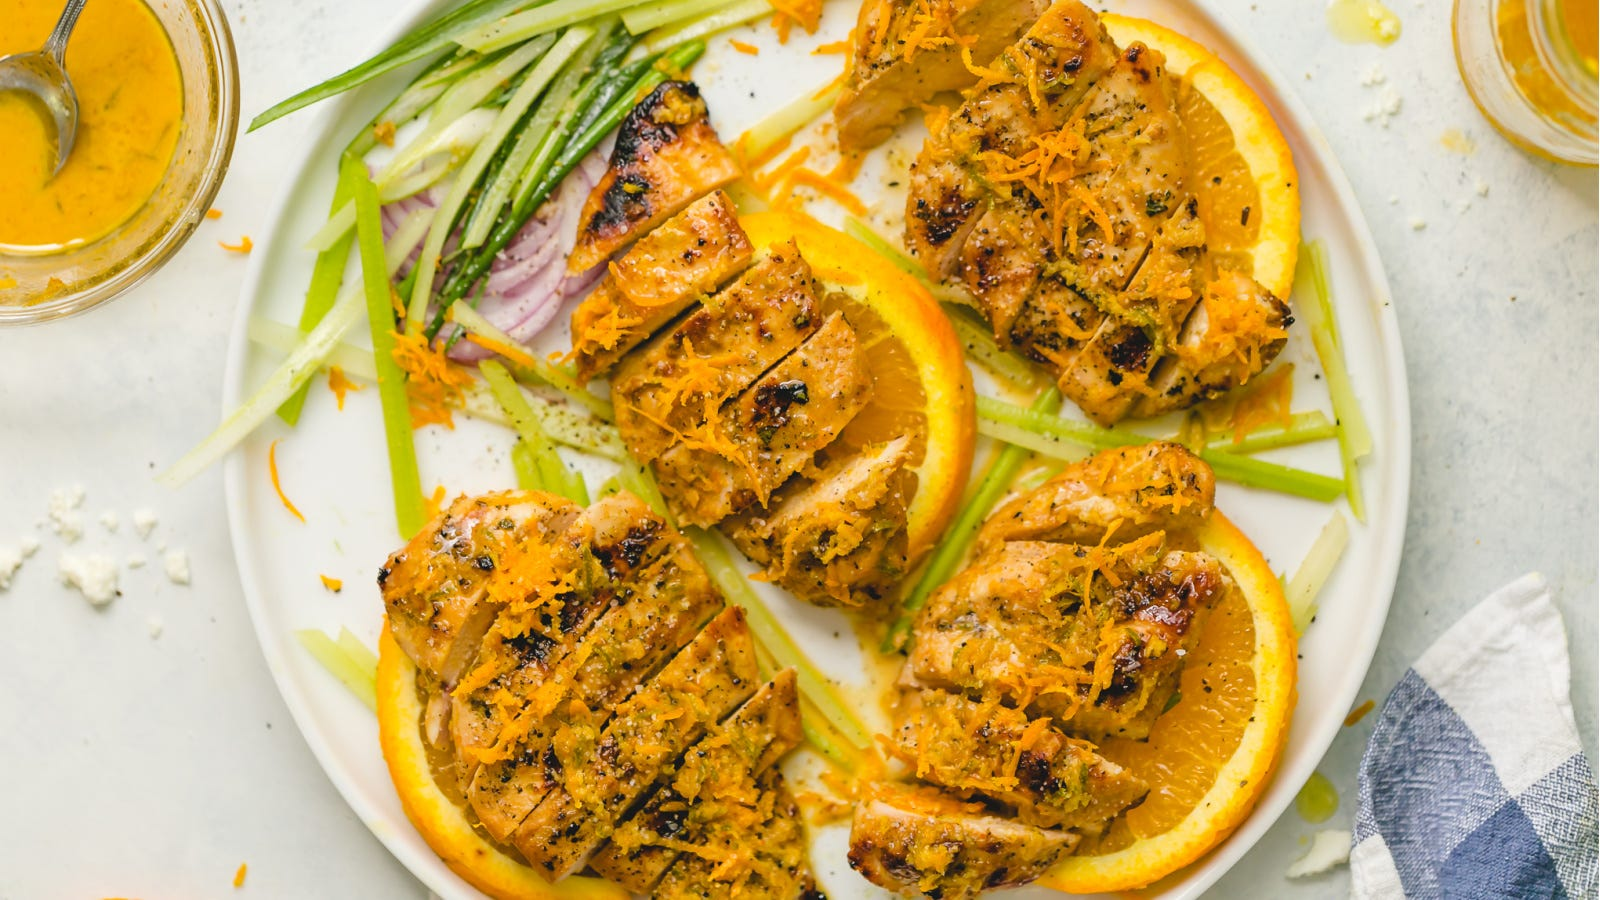 A plate of ginger marinated grilled chicken, topped with orange zest plated with sliced oranges.